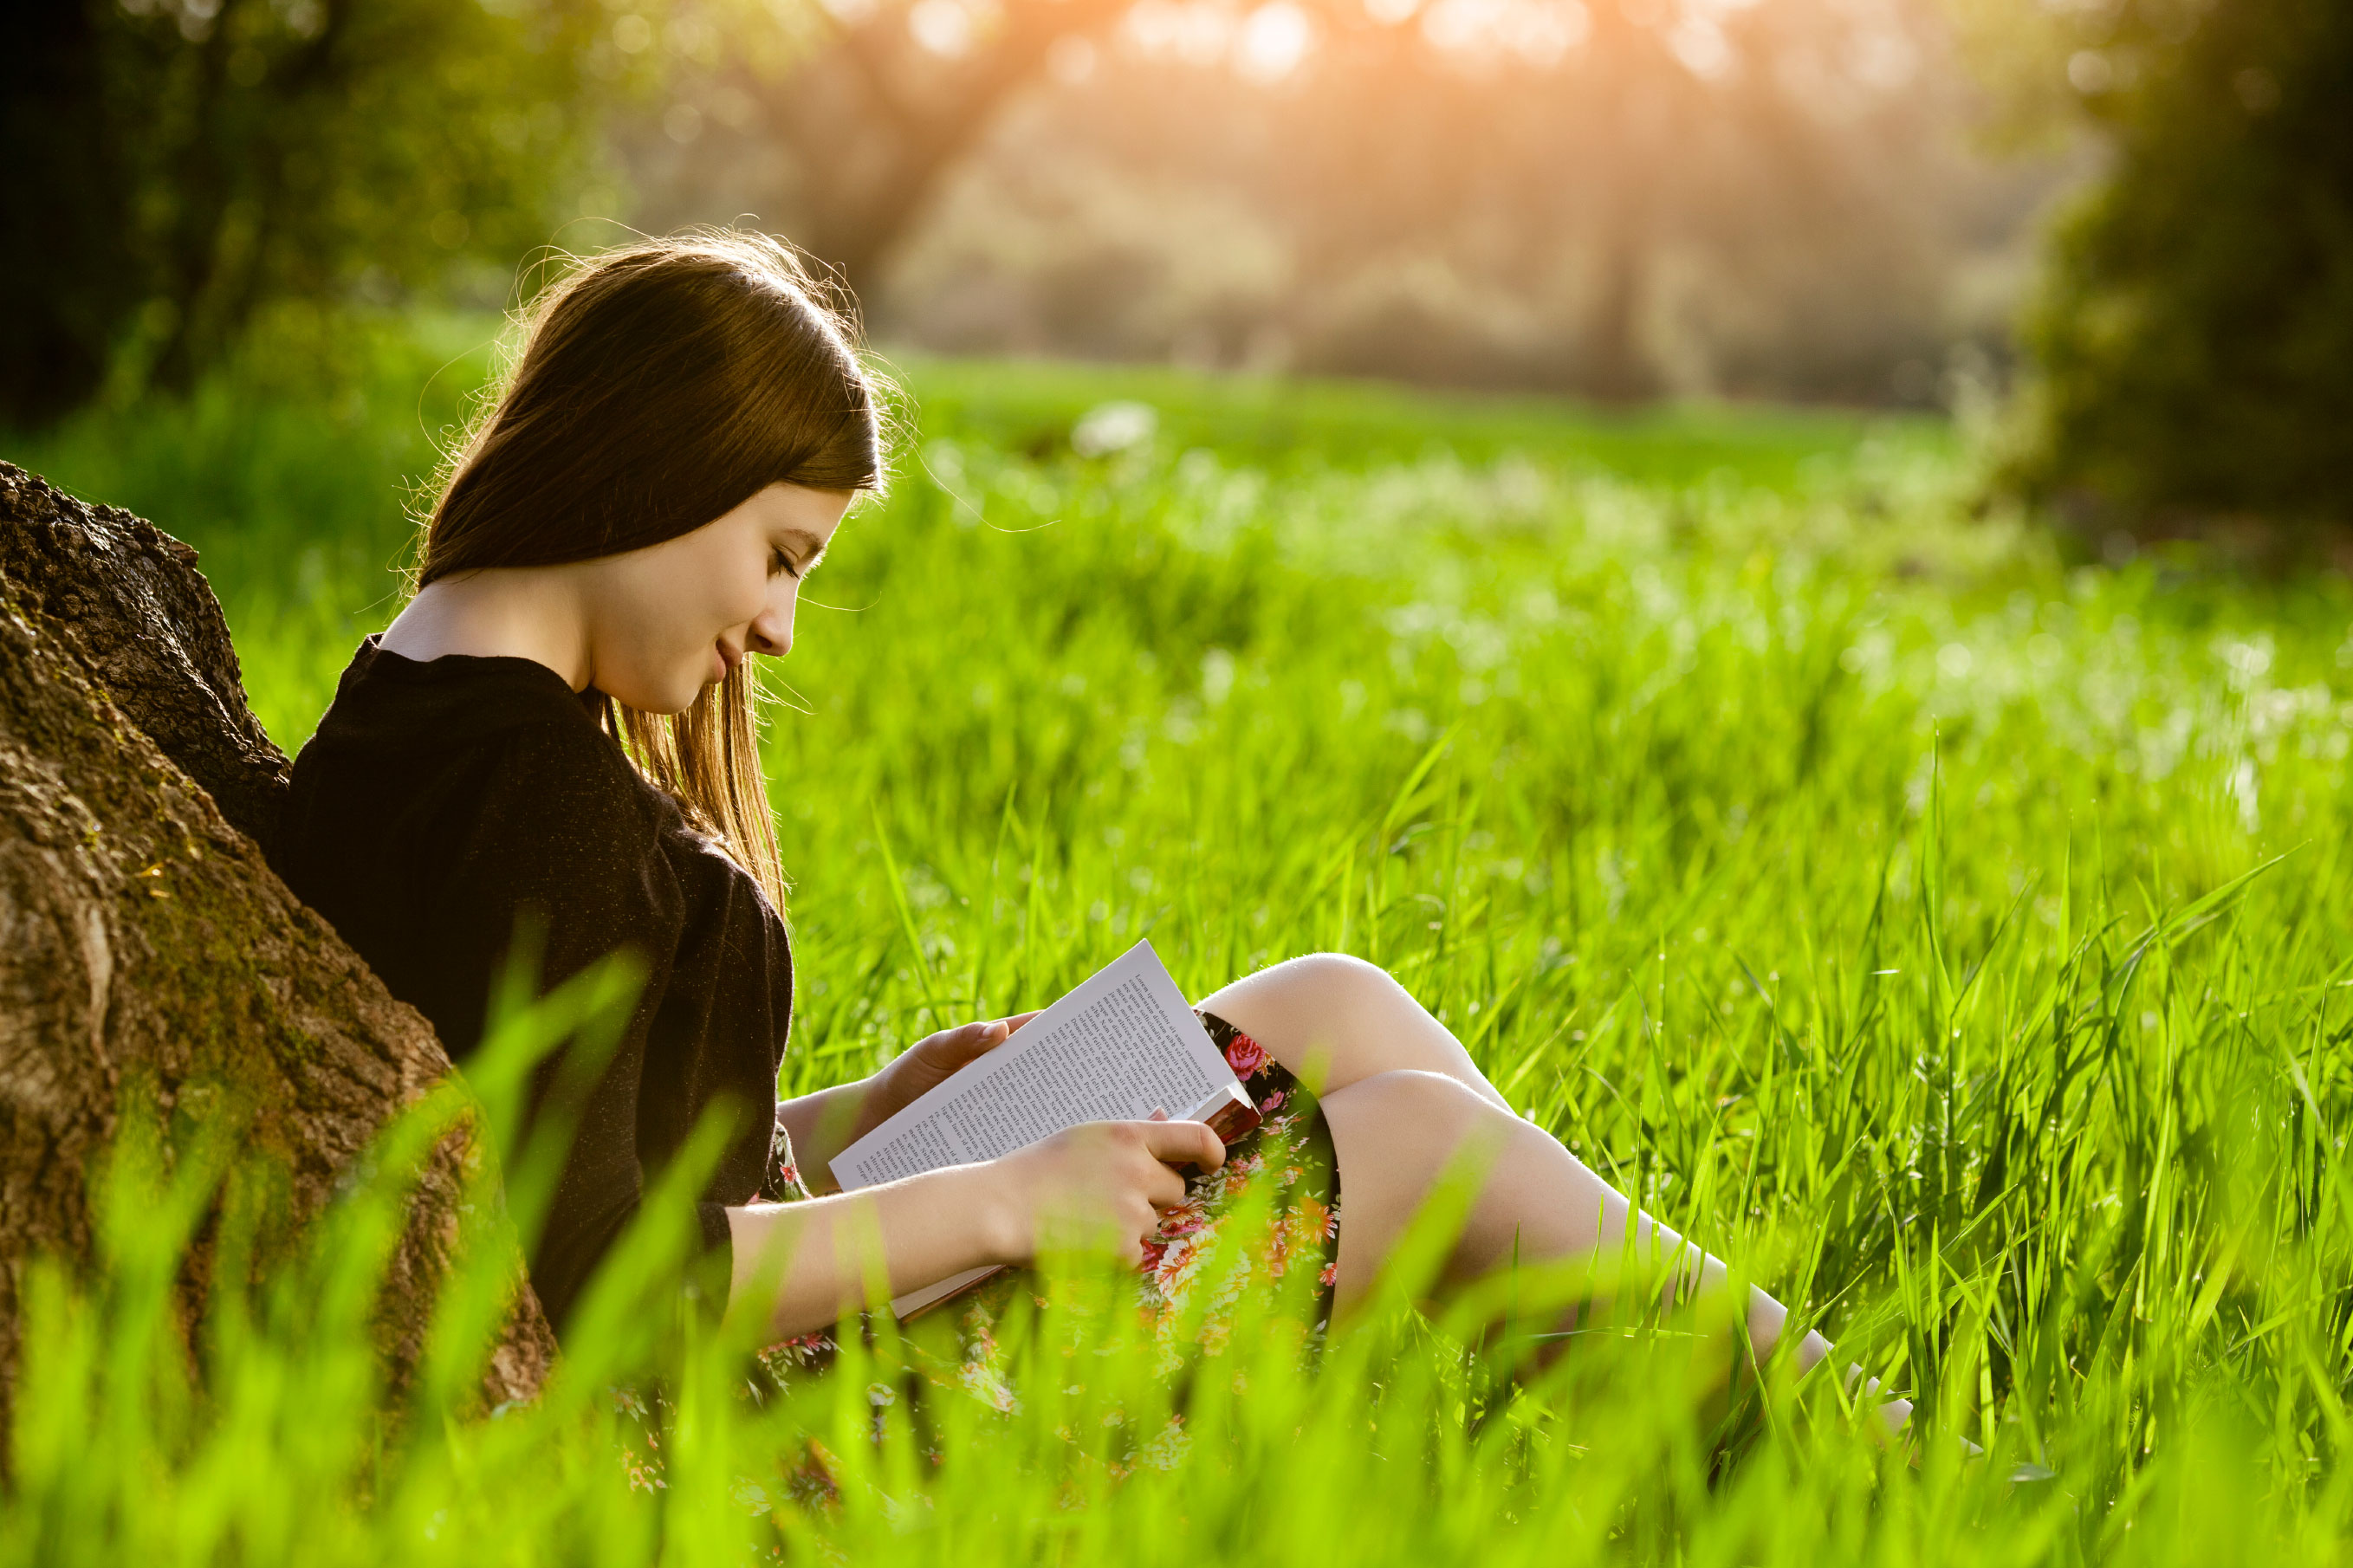 6 reasons why reading is important